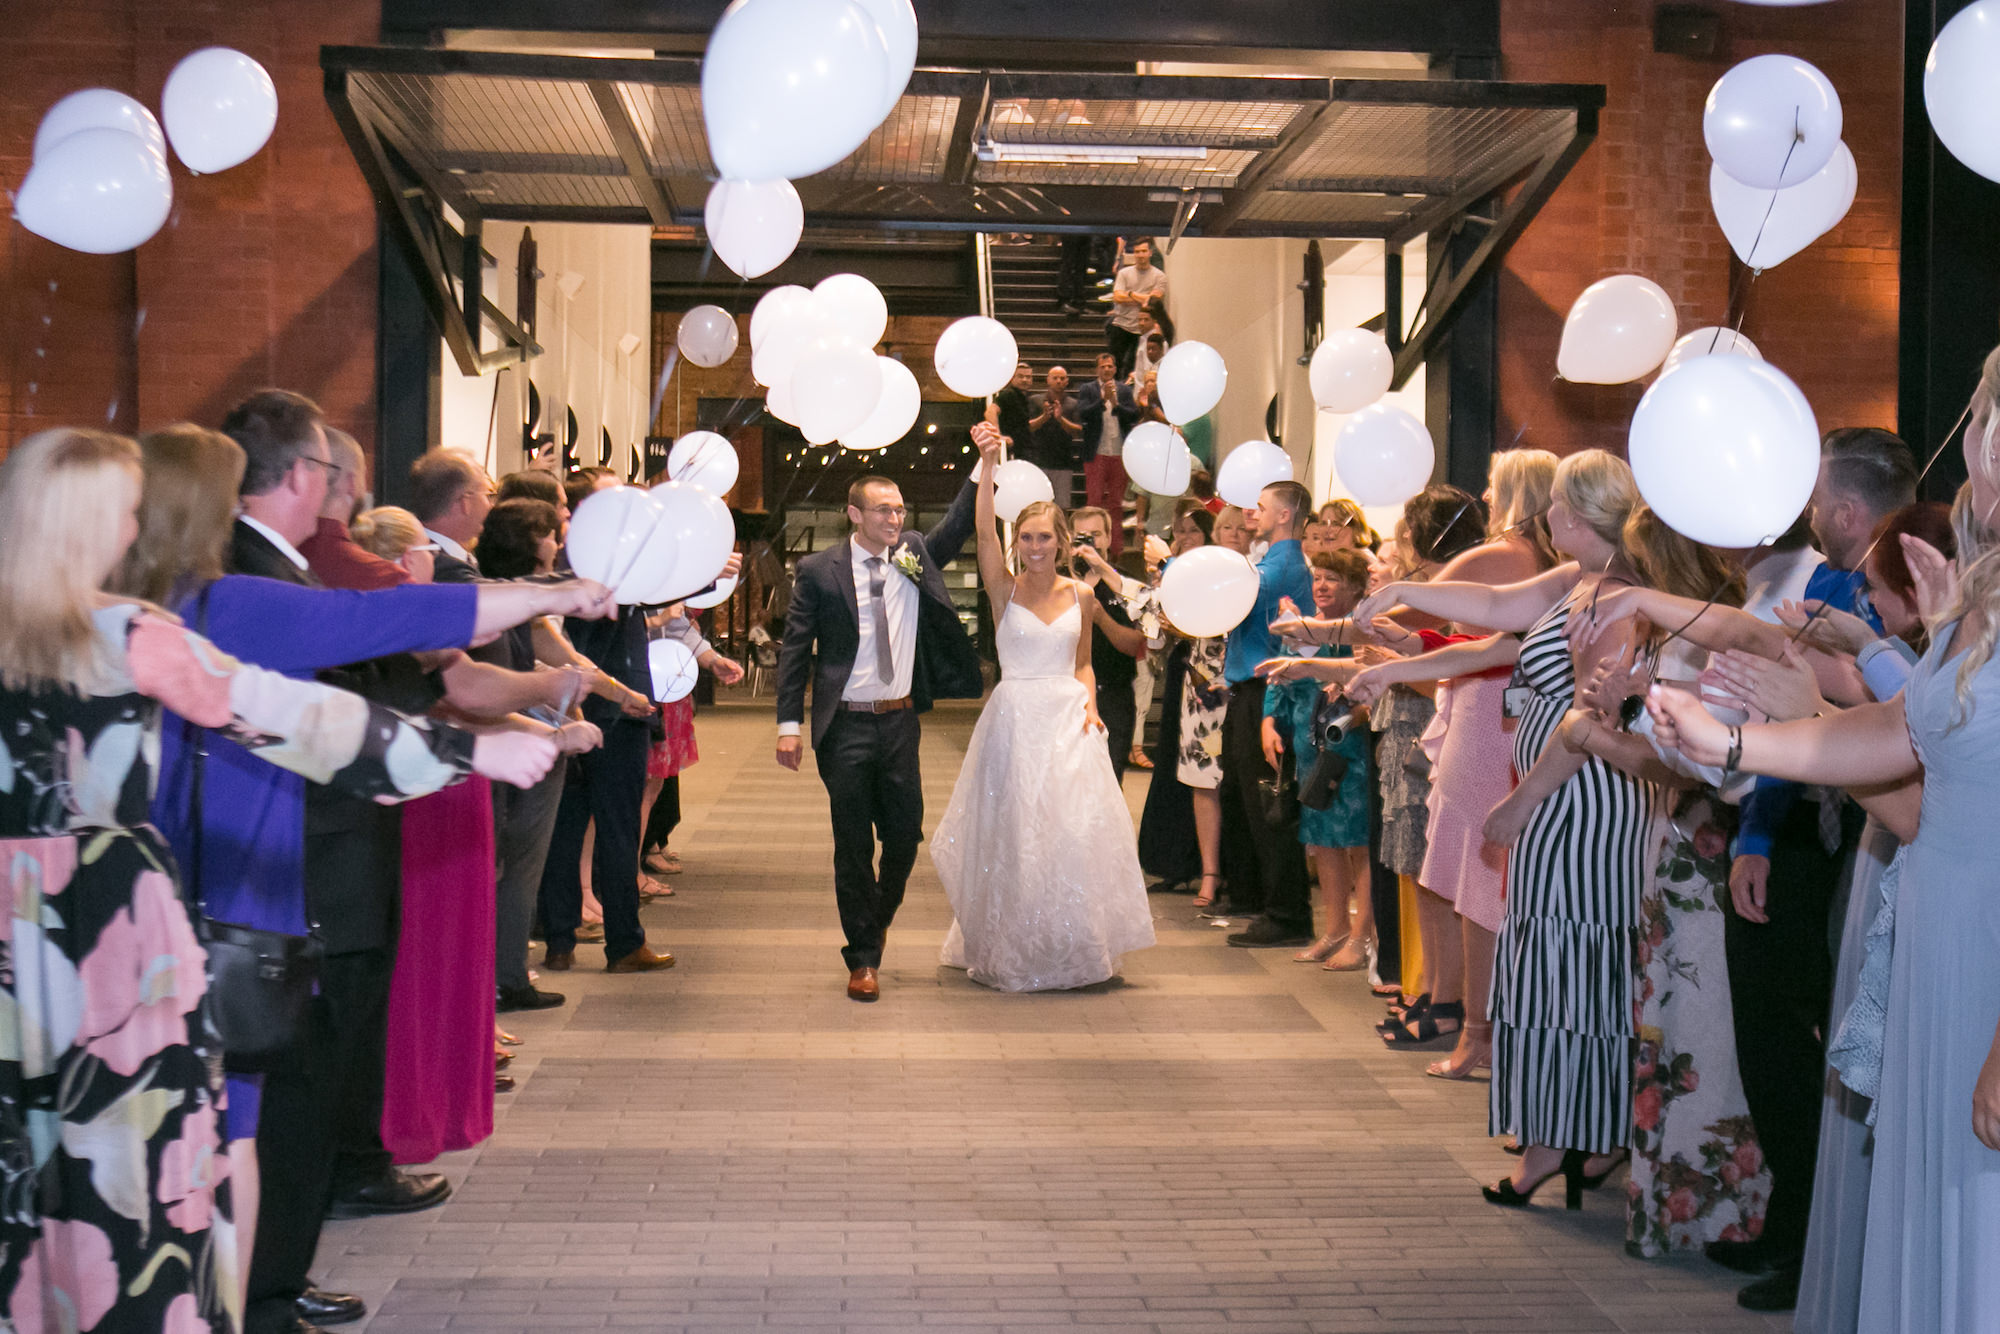 Fun Bride and Groom Wedding Reception Send-Off with Balloons   Tampa Bay Wedding Photographer Carrie Wildes Photography   Industrial Historic Wedding Venue Armature Works   Wedding Planner Love Lee Lane